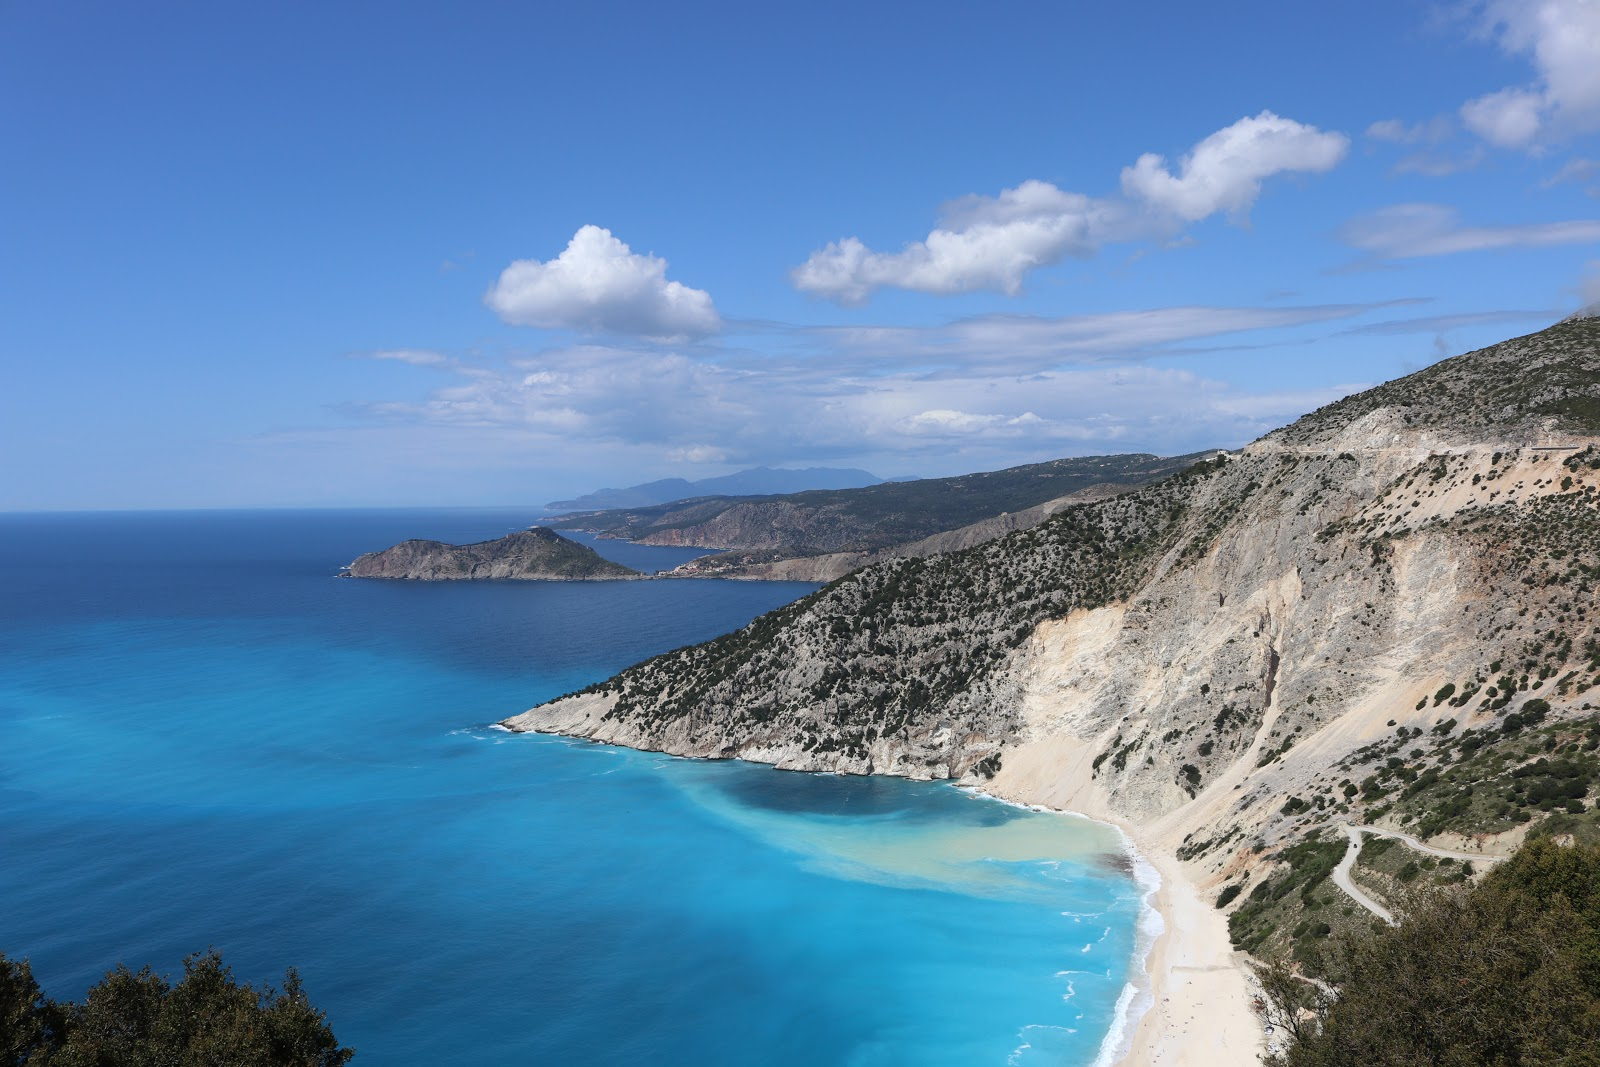 What to see, eat and do in Kefalonia